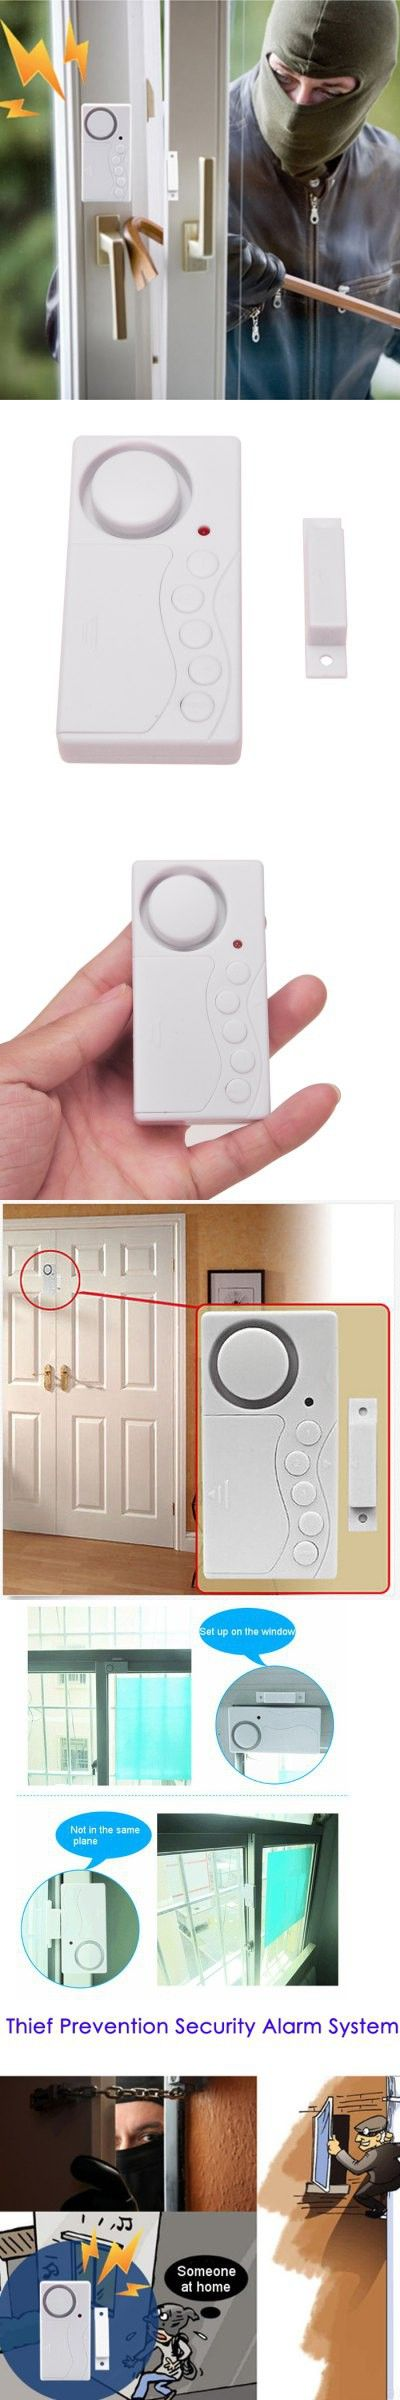 Wireless Household Security Alarm System